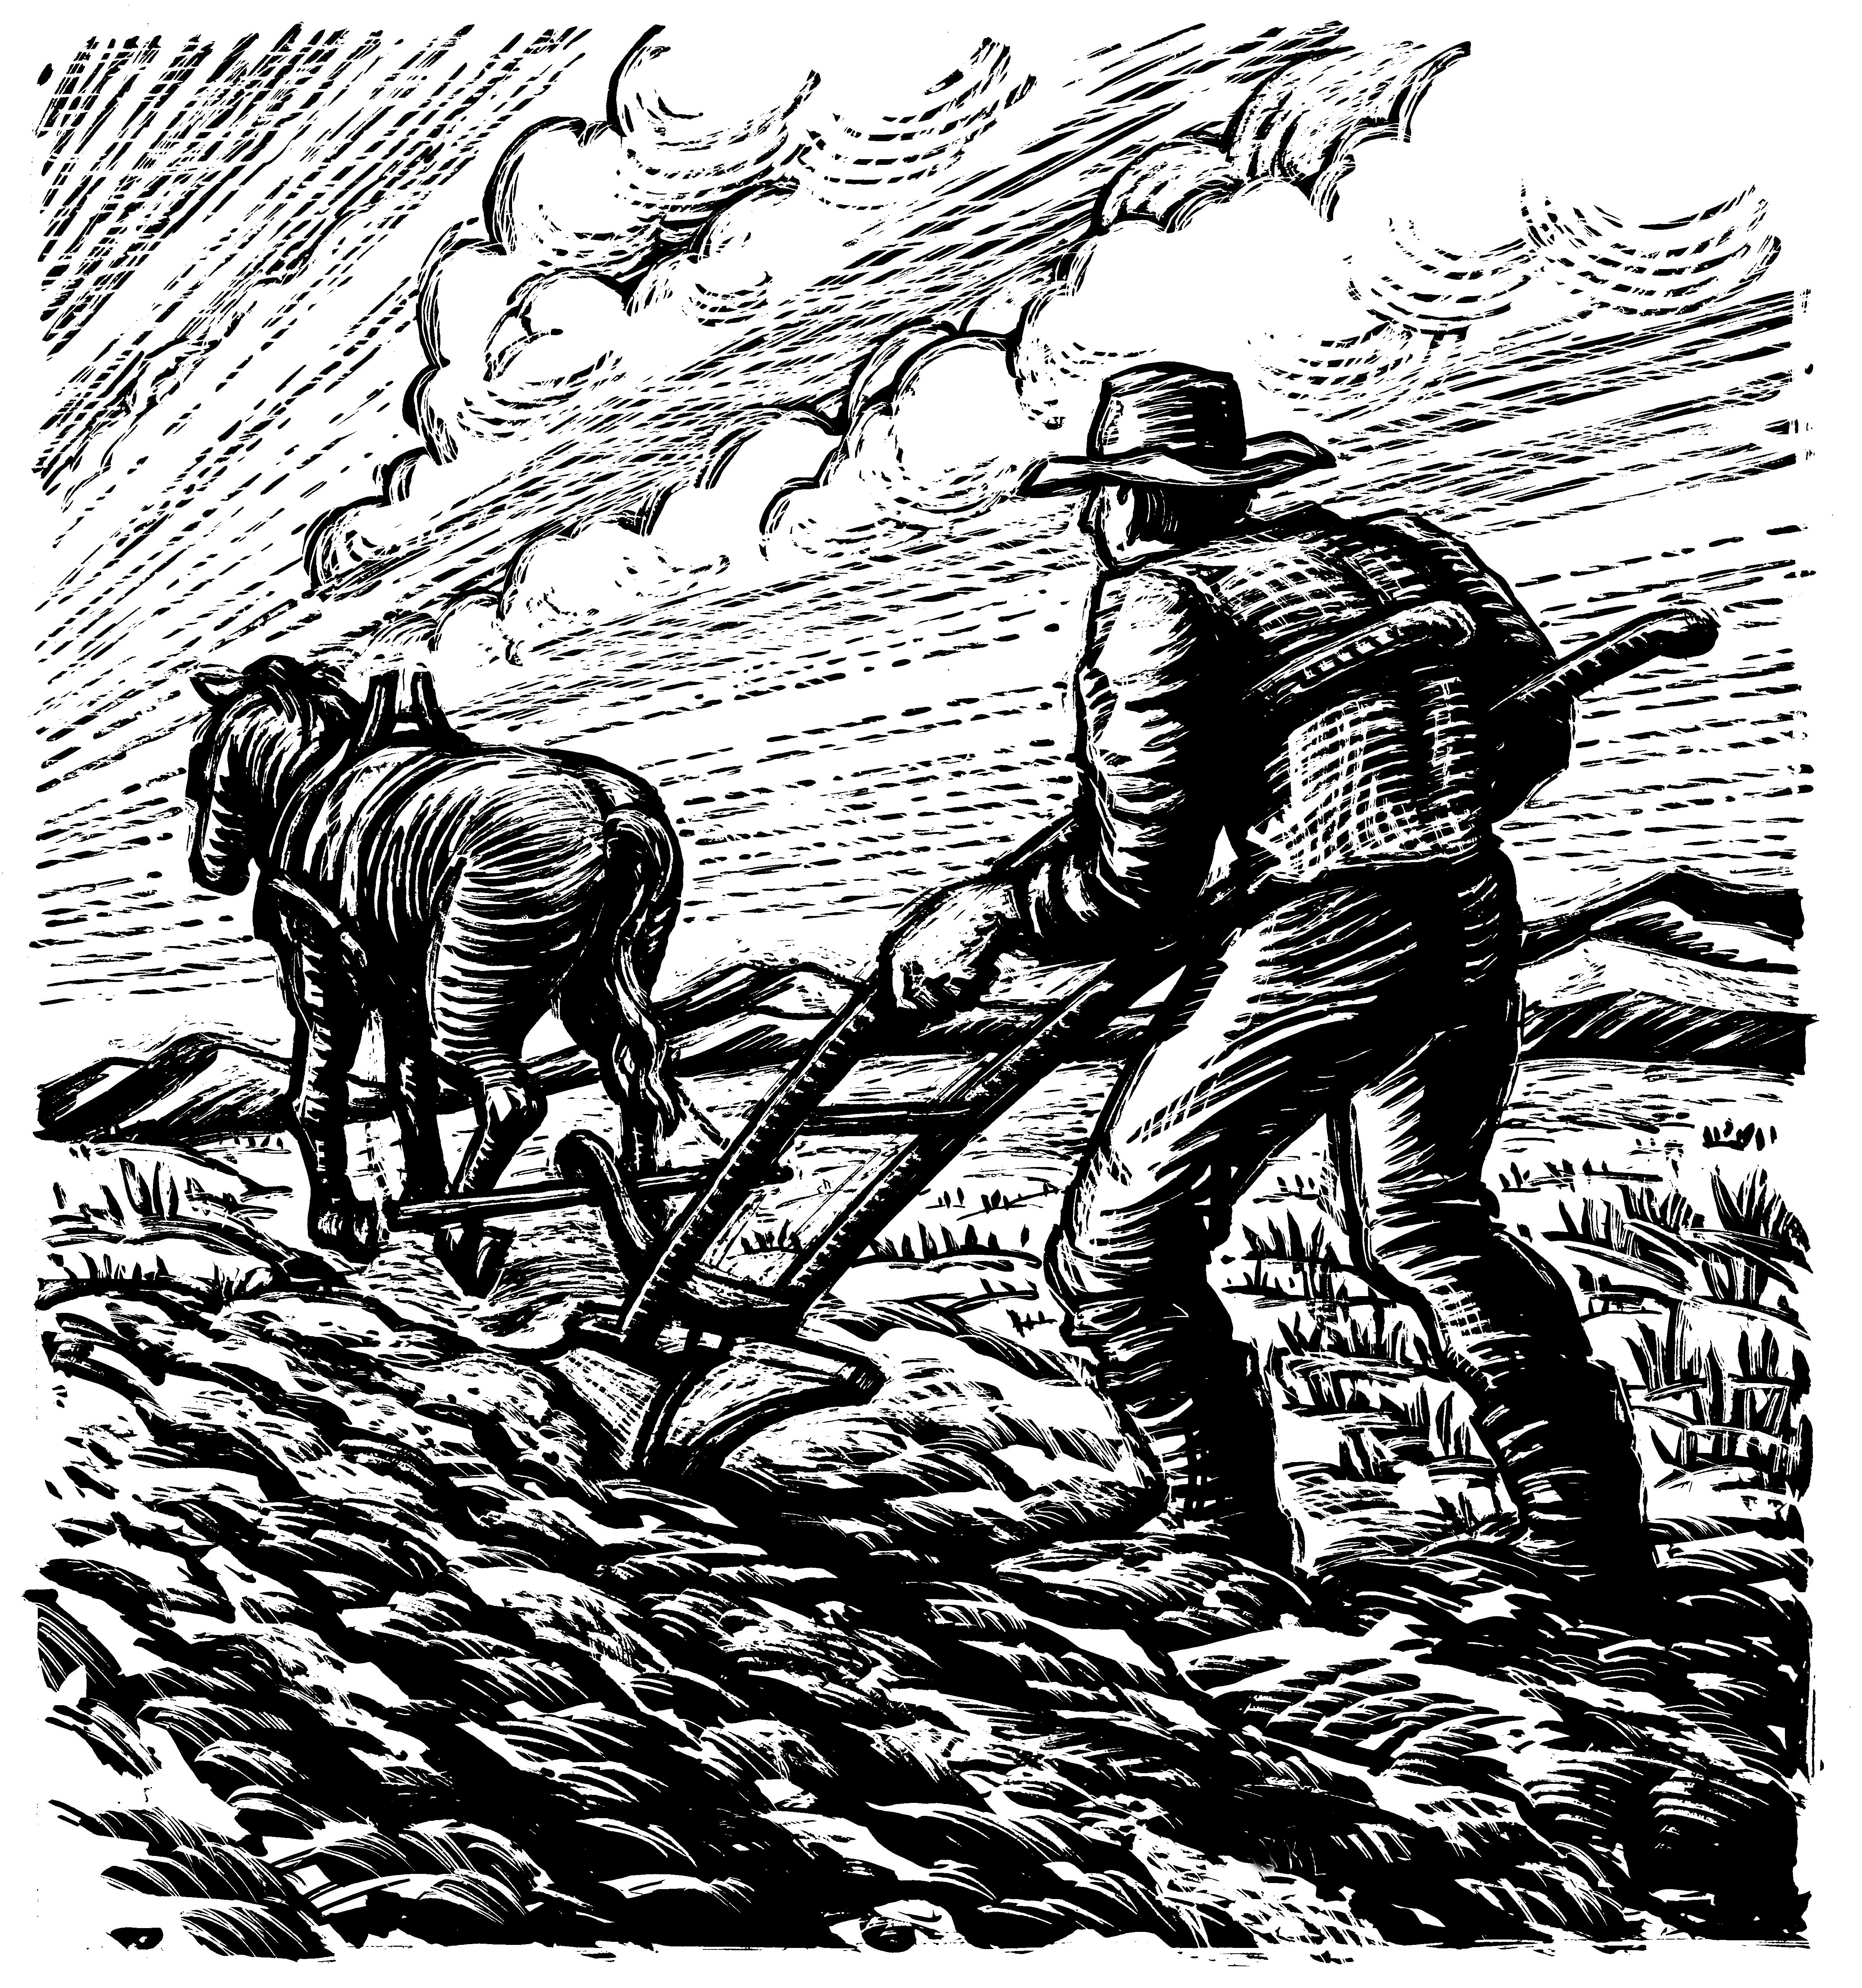 An illustration of a man plowing a field.